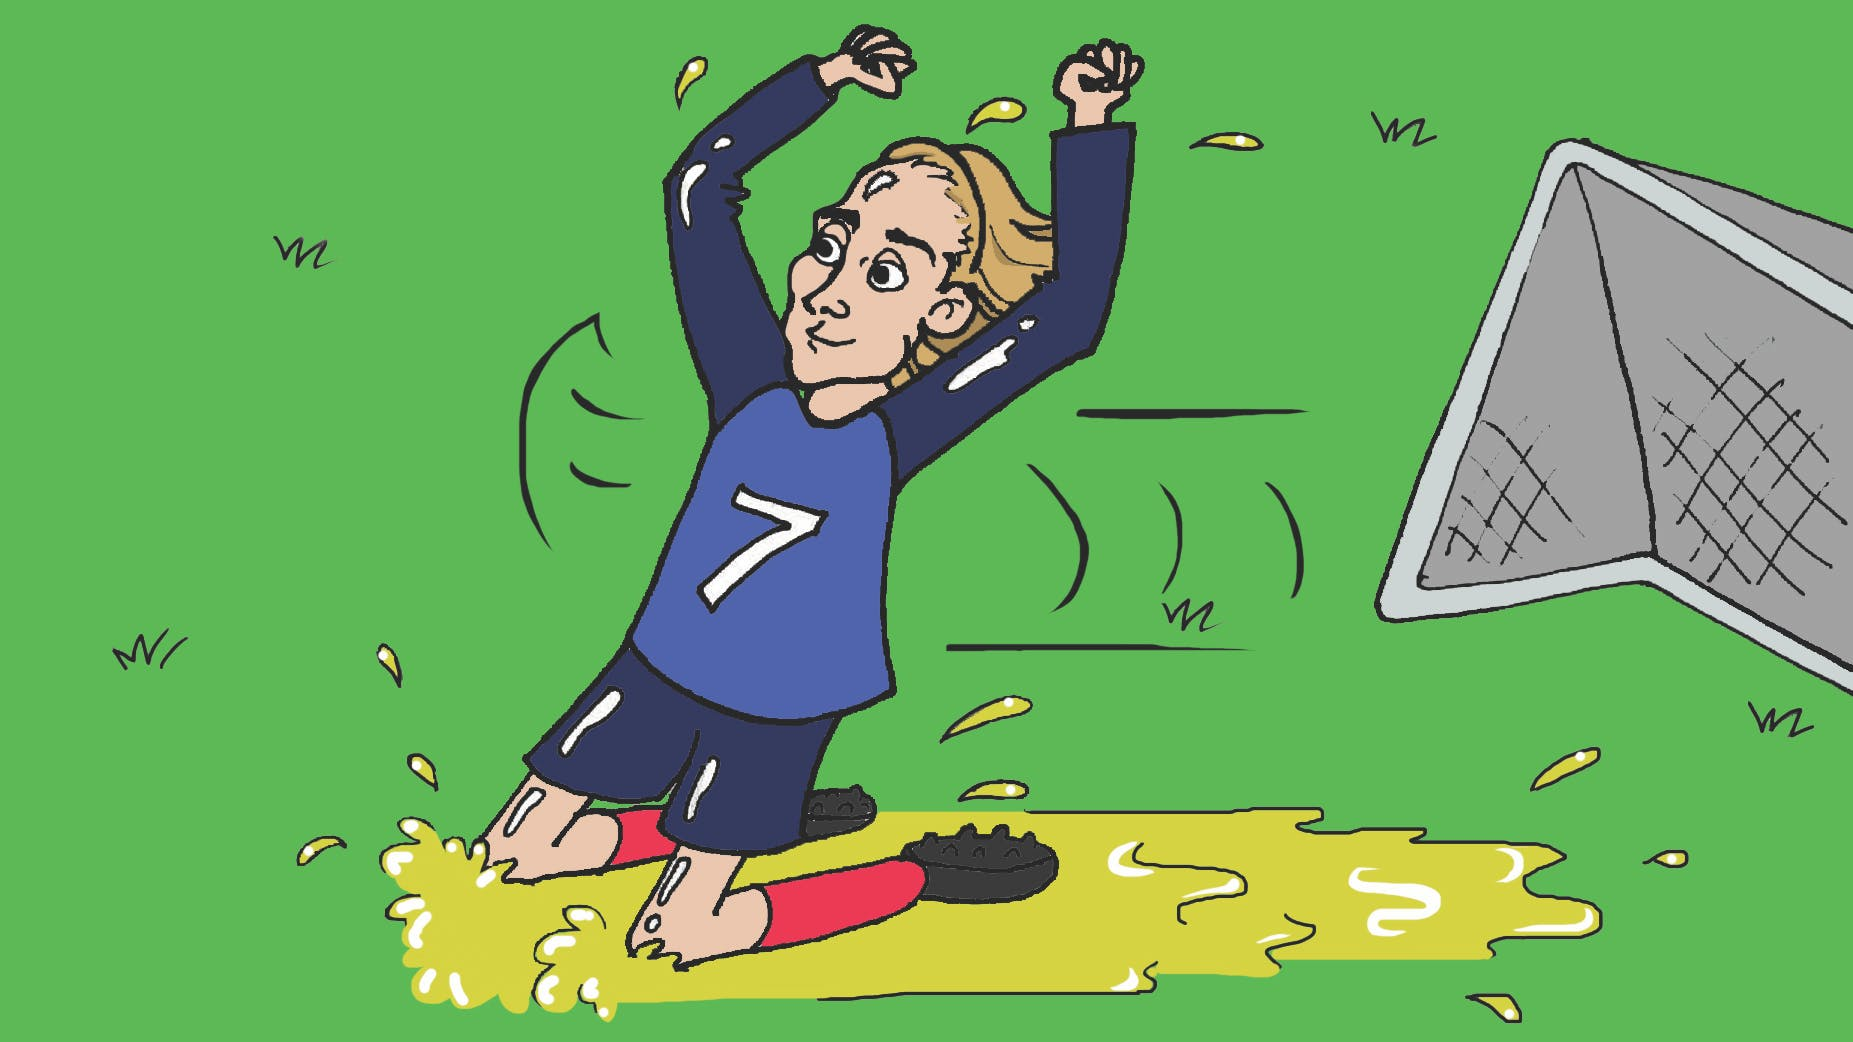 Who's the slipperiest footballer? - Antoine GREASE-man Griezmann